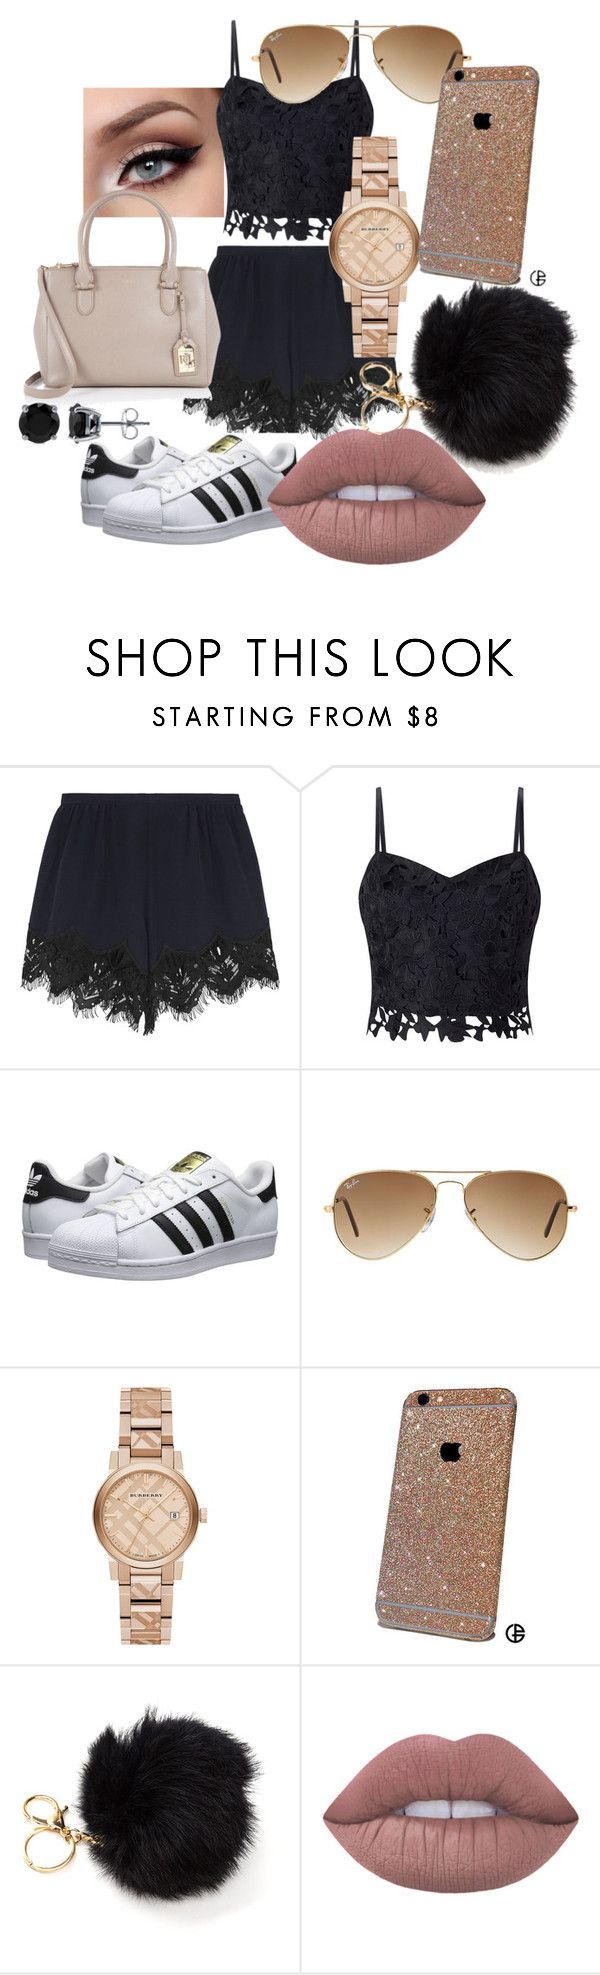 """""""mode trent handtas"""" by alex-luxem on Polyvore featuring mode, Chloé, Lipsy, adidas Originals, Ralph Lauren, Ray-Ban, Burberry, Lime Crime en BERRICLE"""